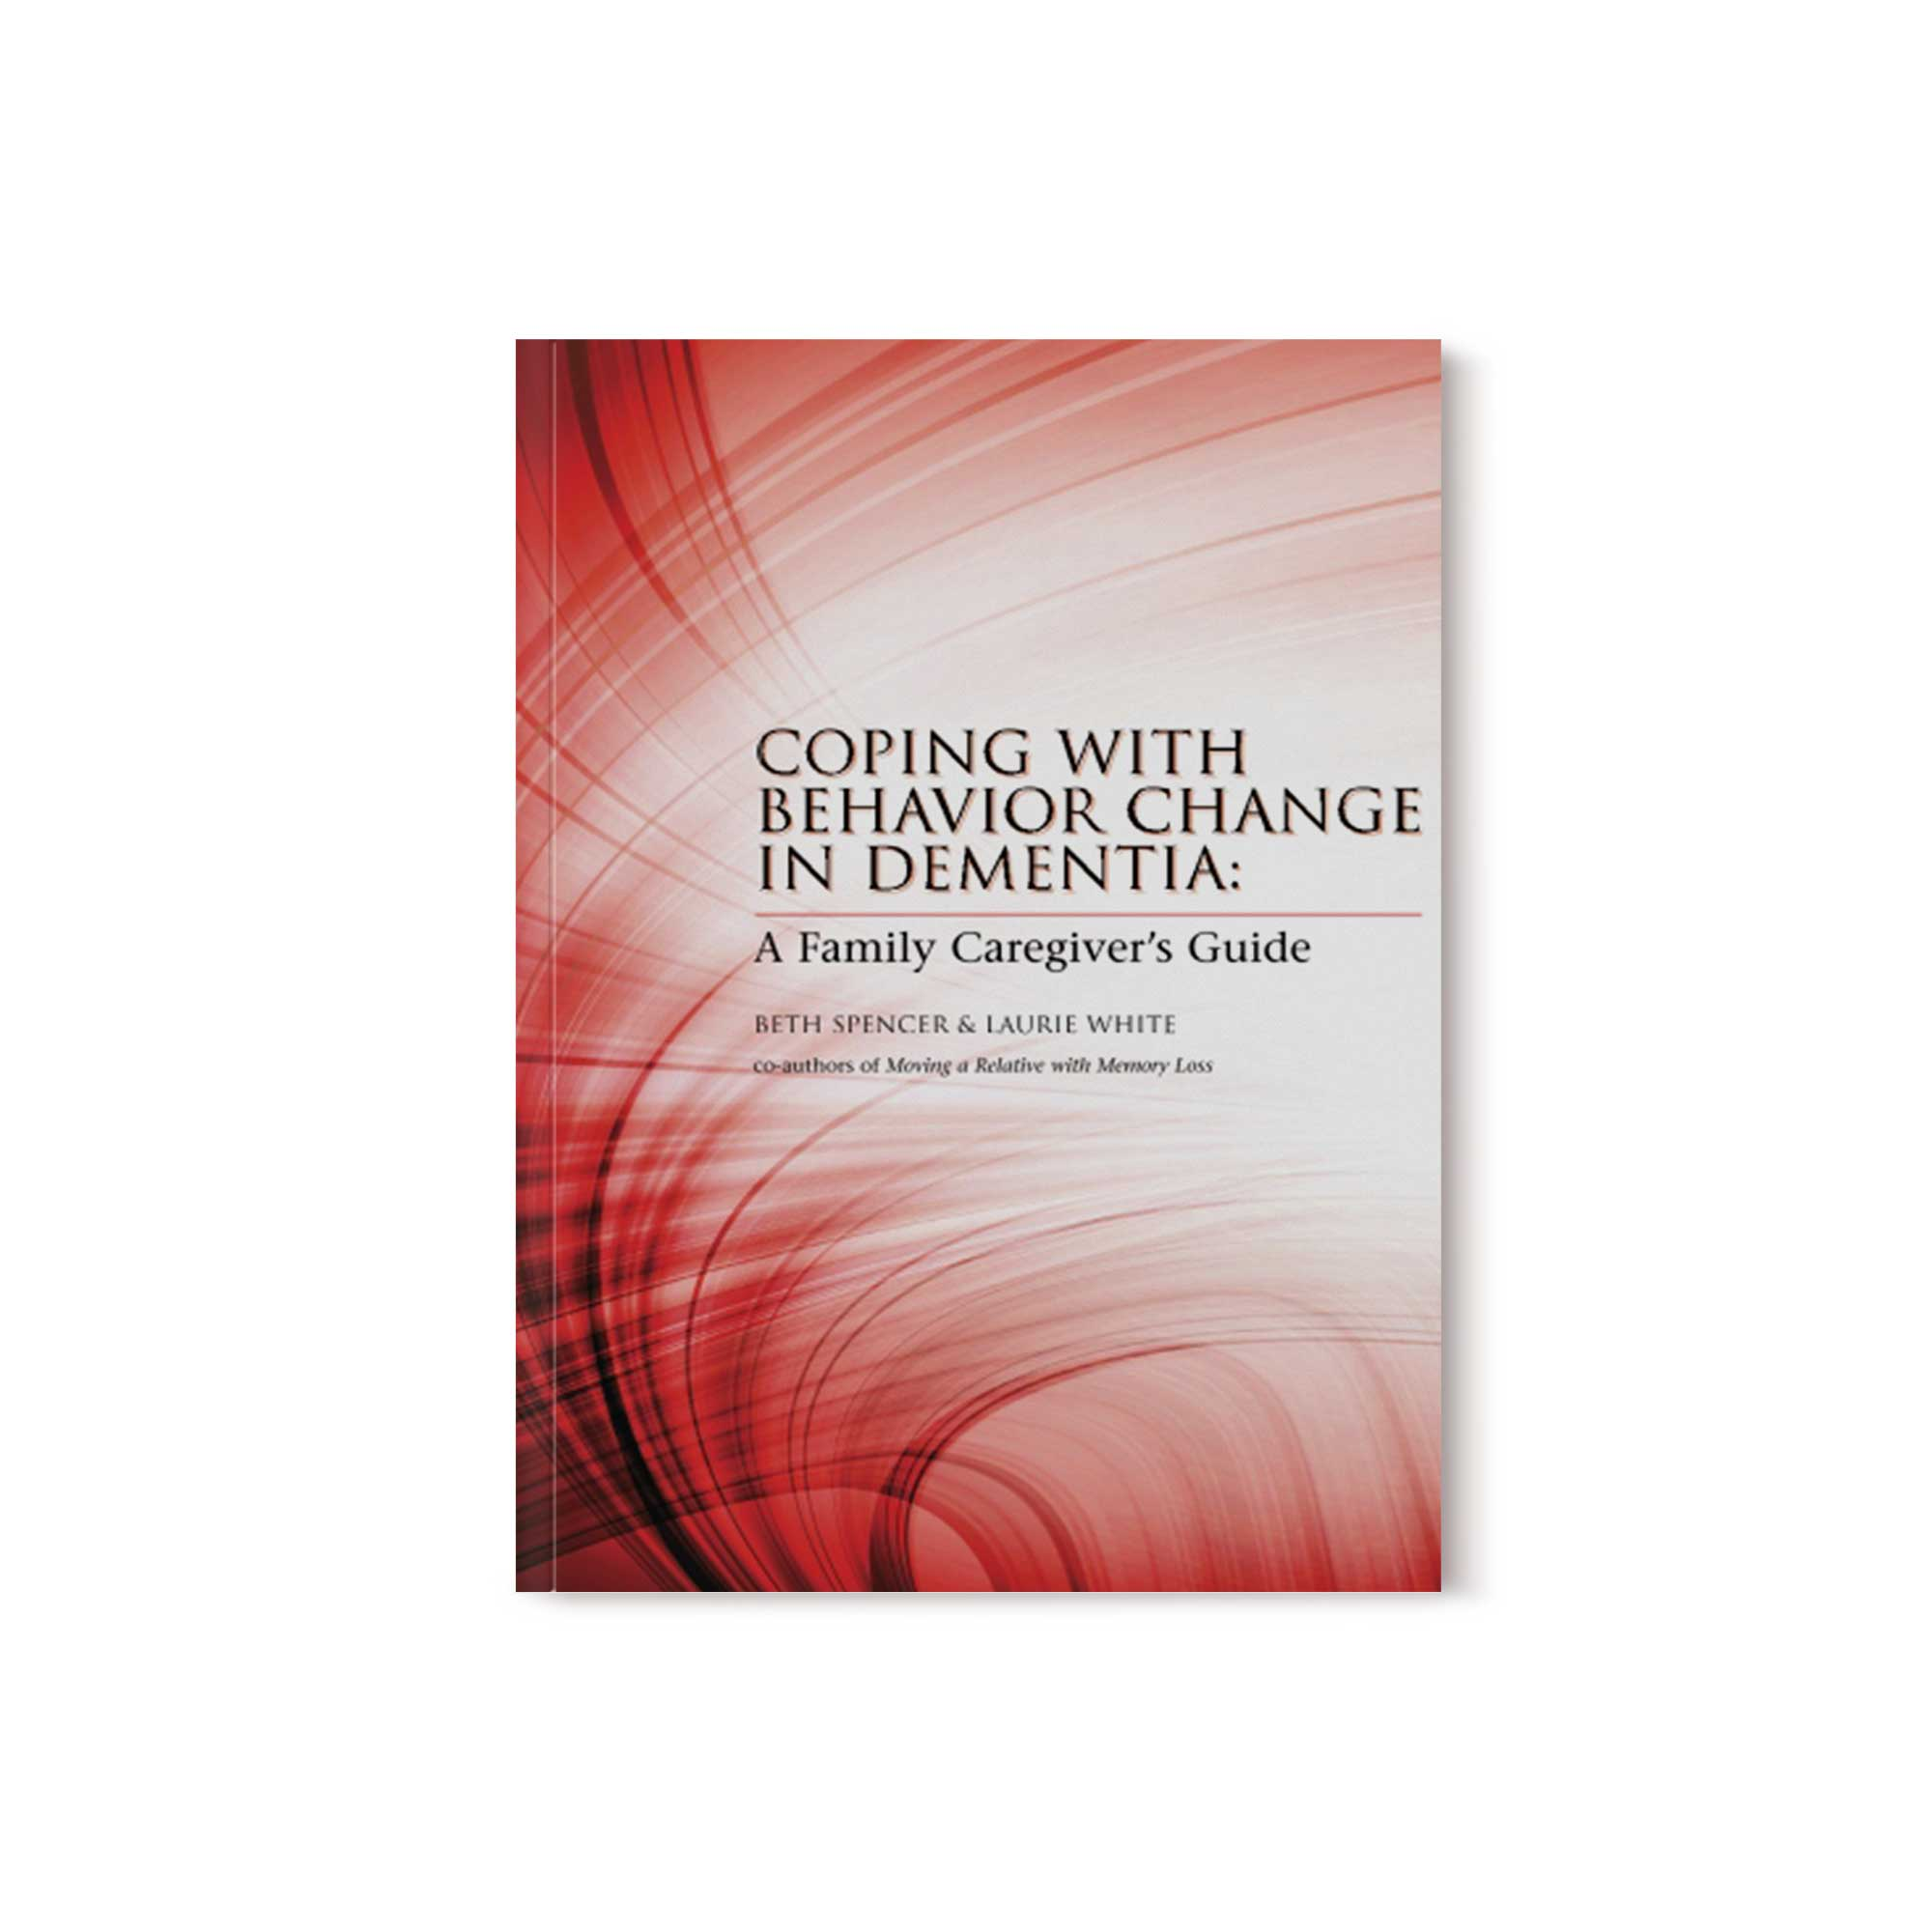 advice on coping with behavior change in dementia